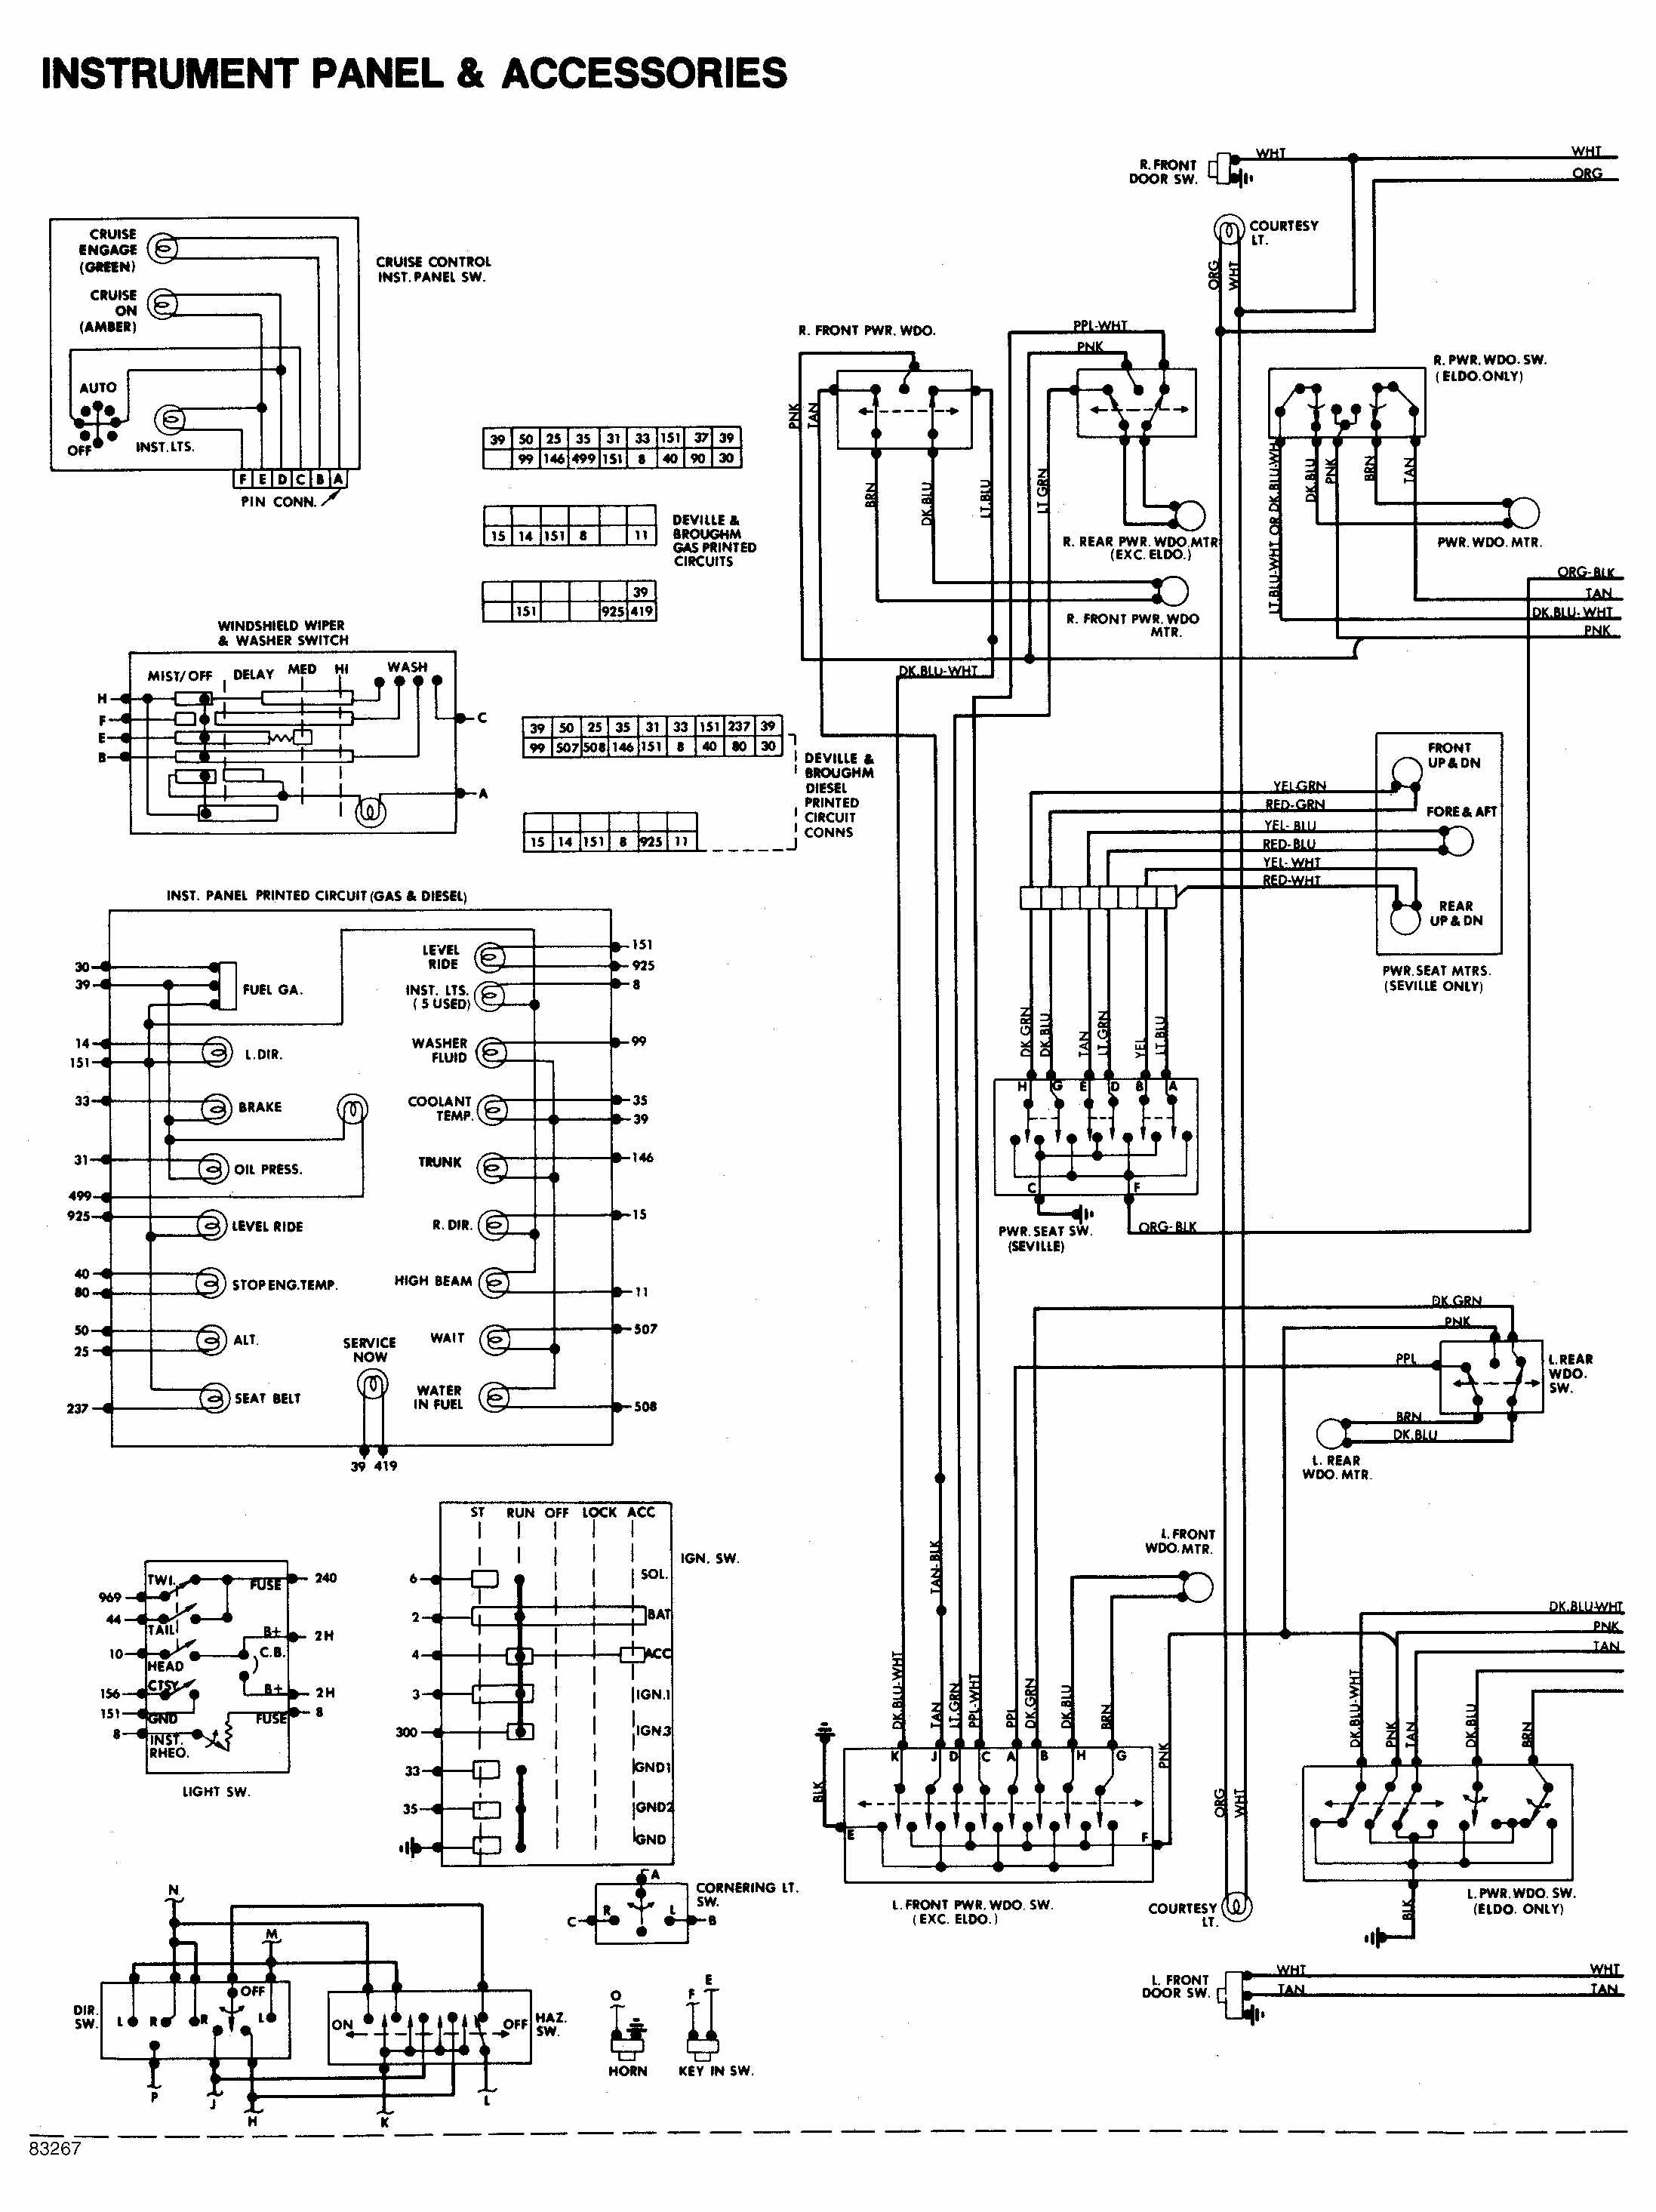 1968 Gmc Wiring Harness On Diagram 68 Mustang Data Bus Brake